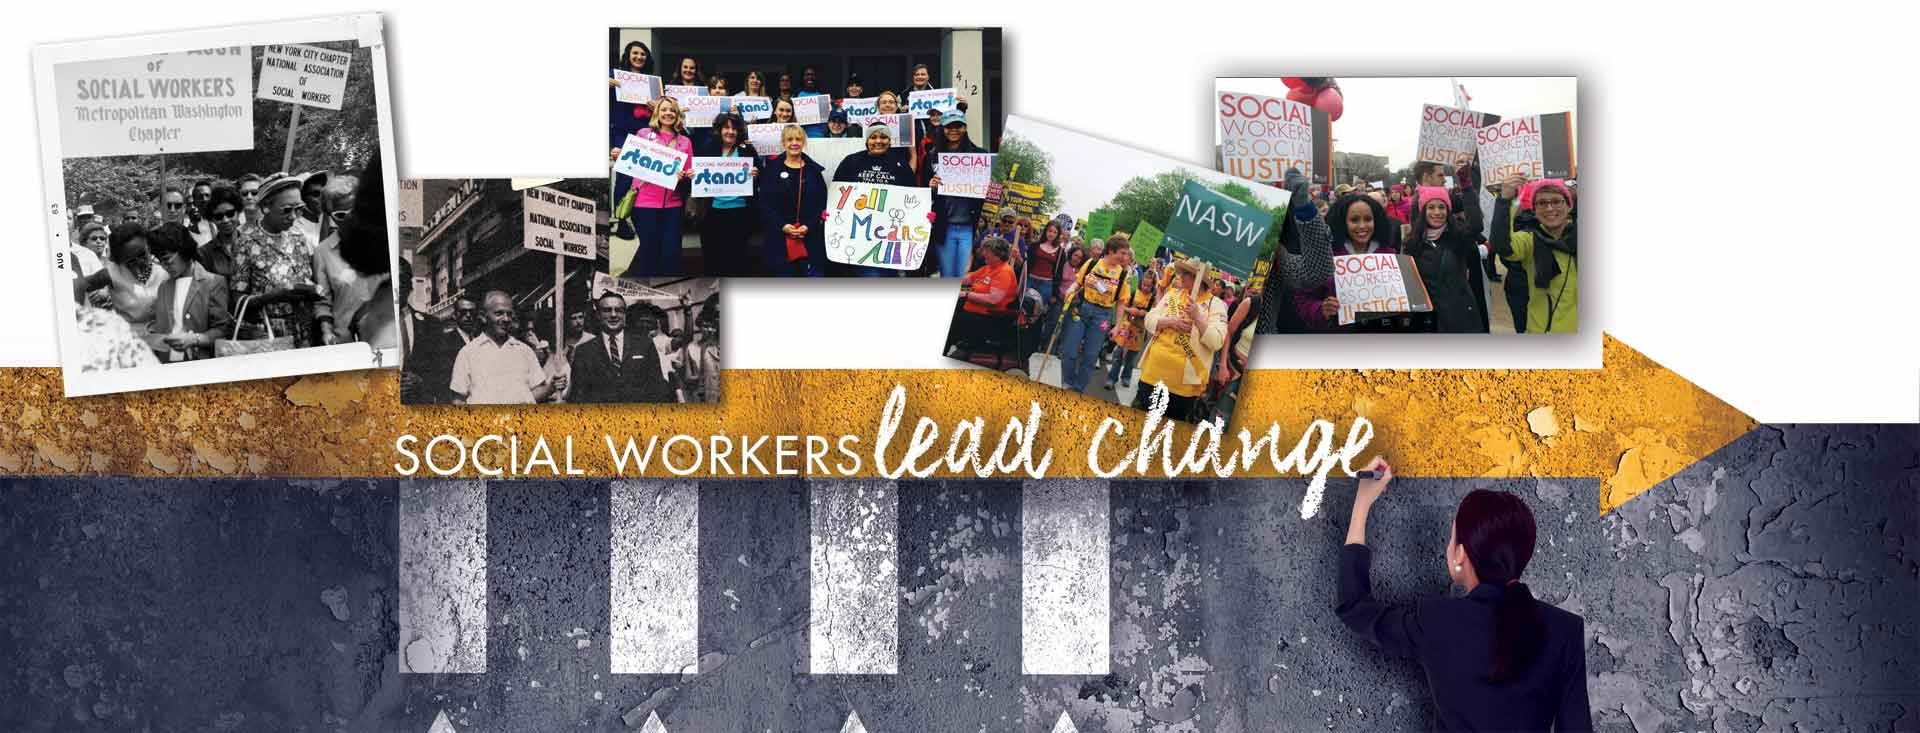 Social workers lead change: collage of people at protest marches and demonstrations